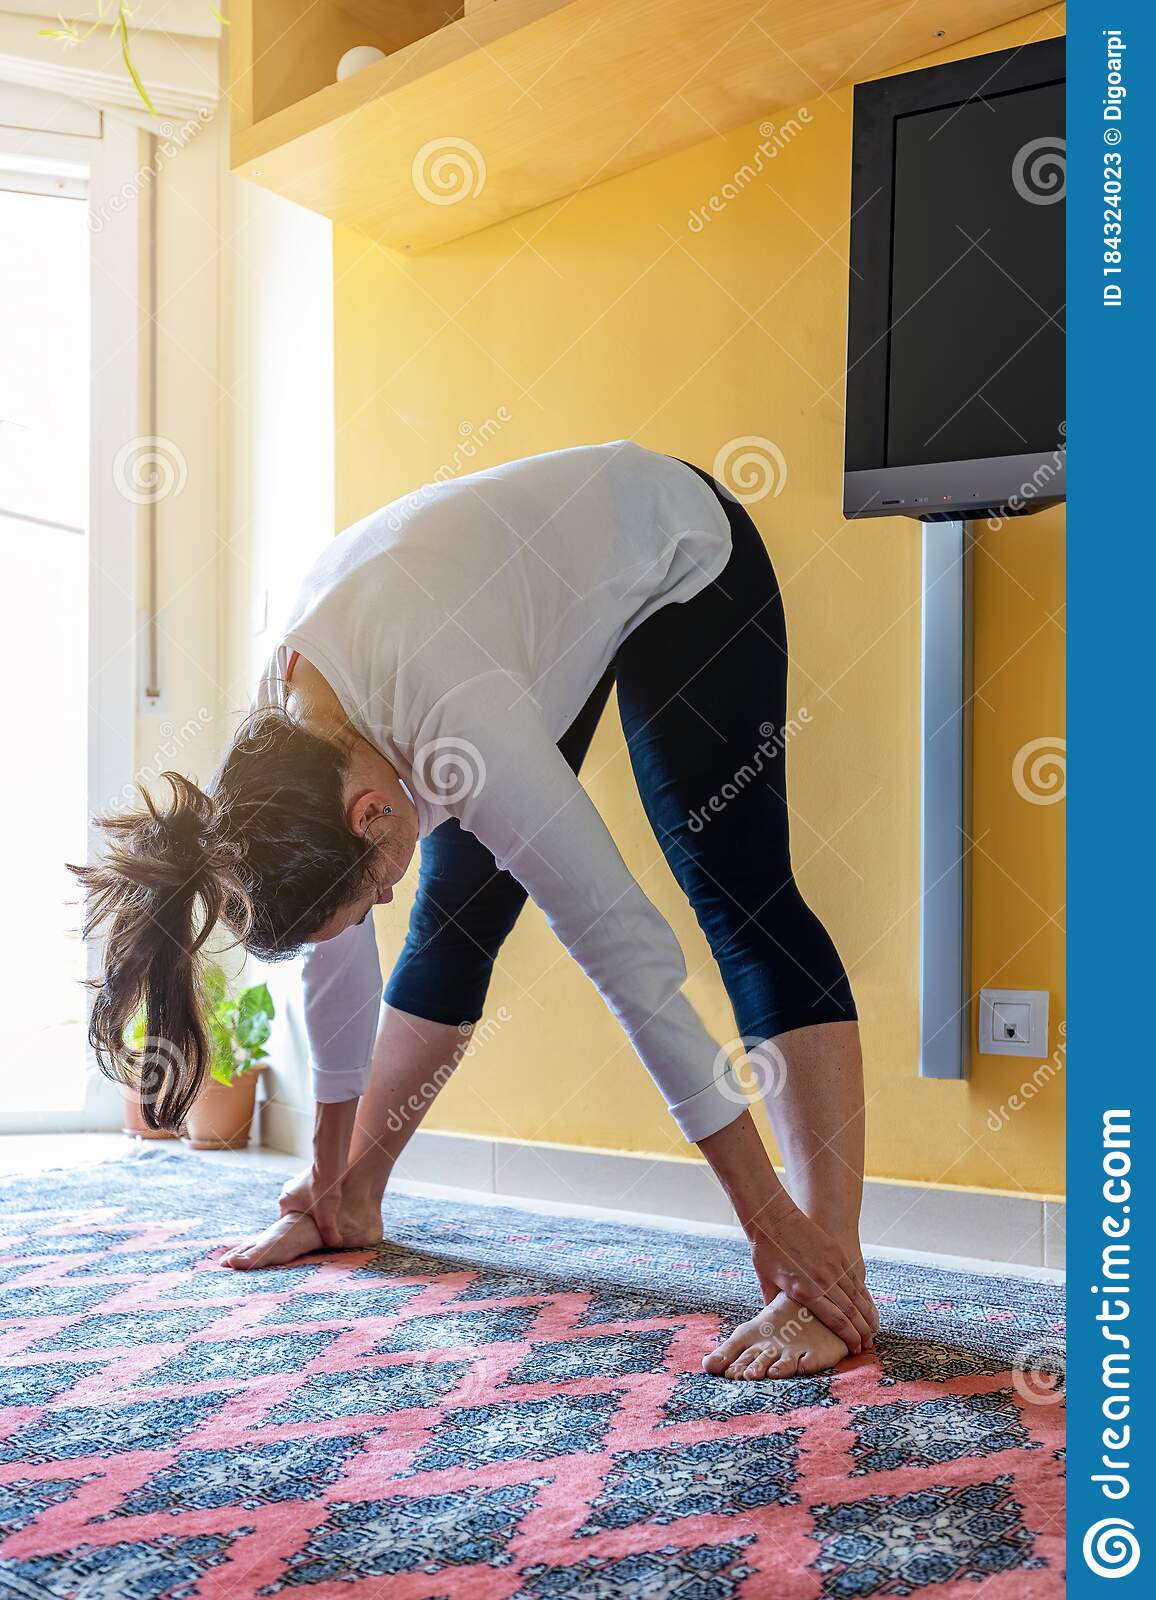 Pretty Spanish Girl Doing Yoga At Home In The Living Room Stock Image Image Of Meditate Insulation 184324023